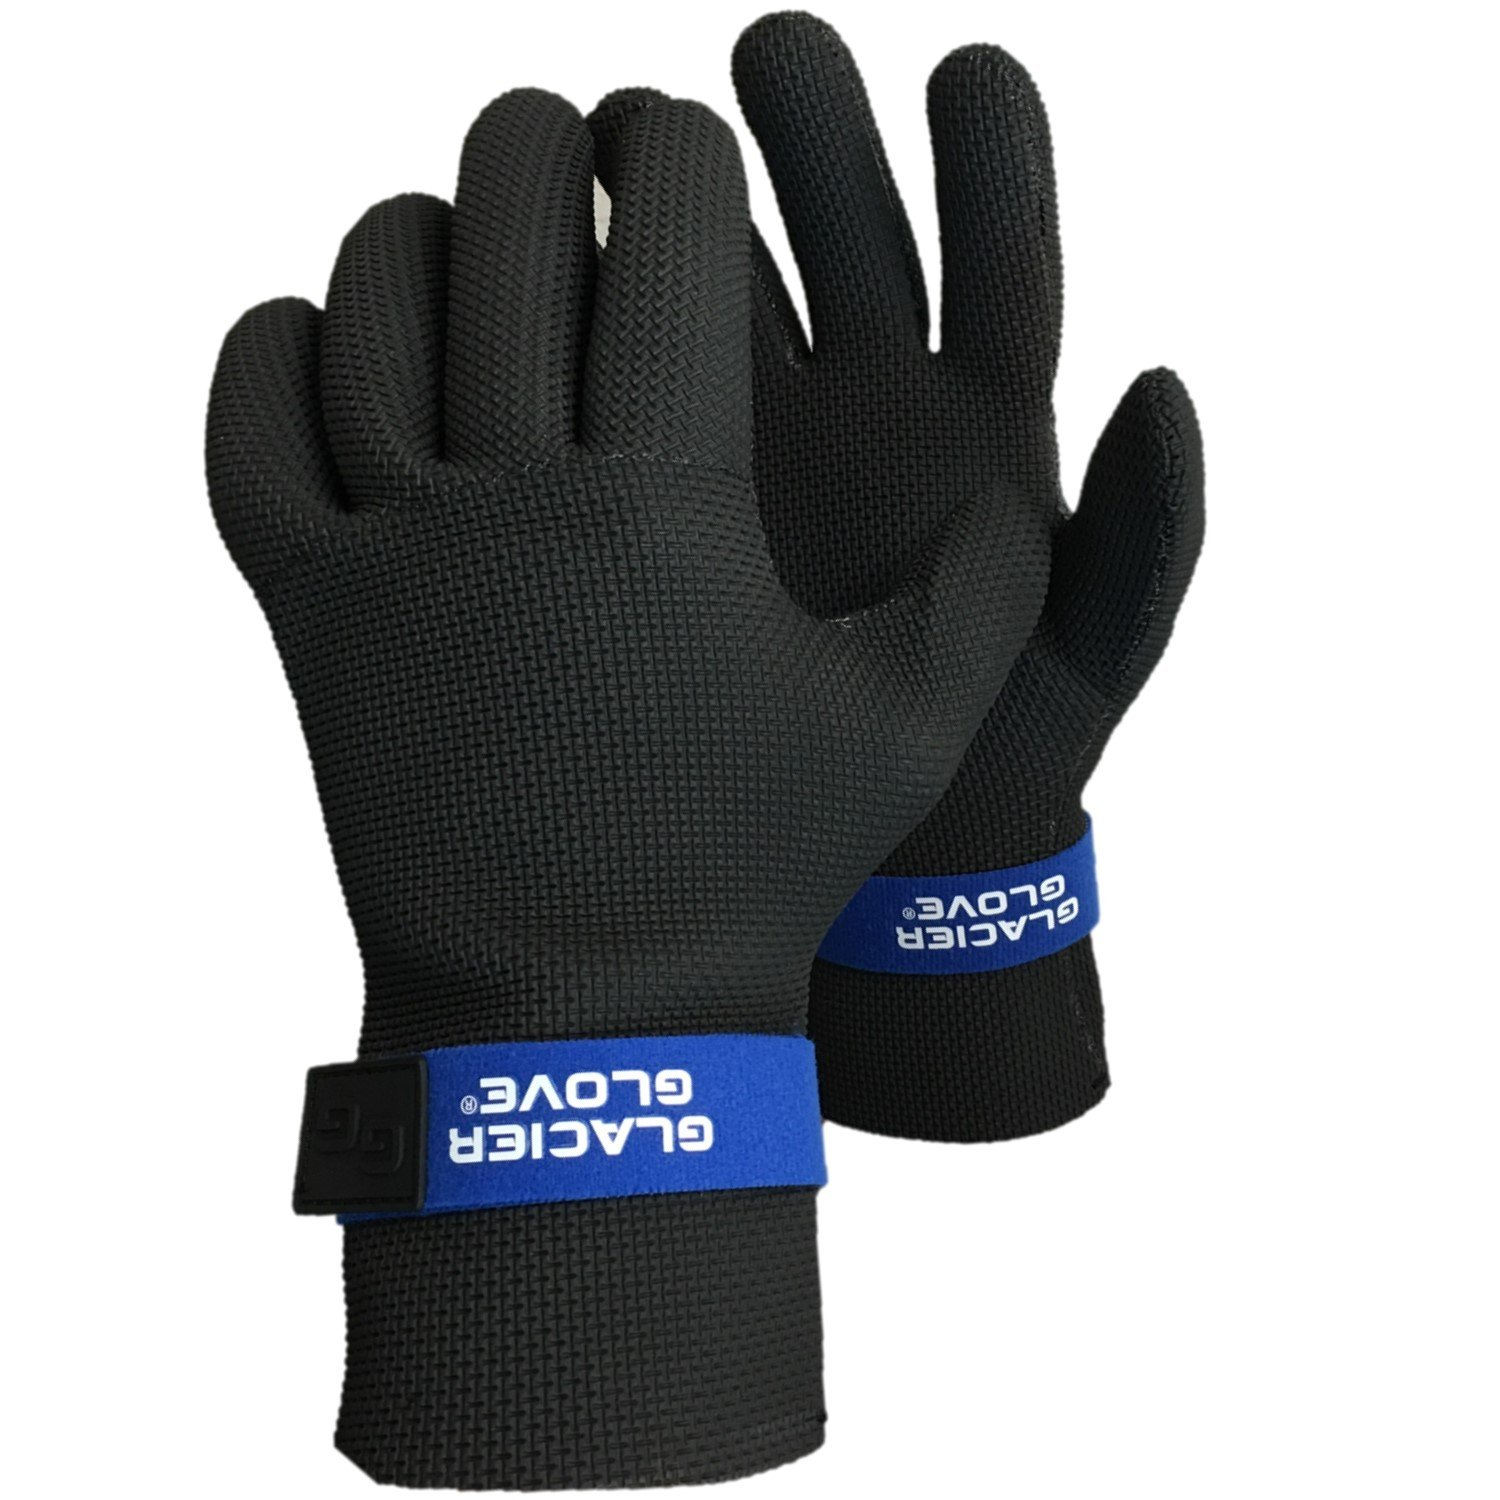 Glacier Glove Kenai Waterproof Glove, Black, Medium